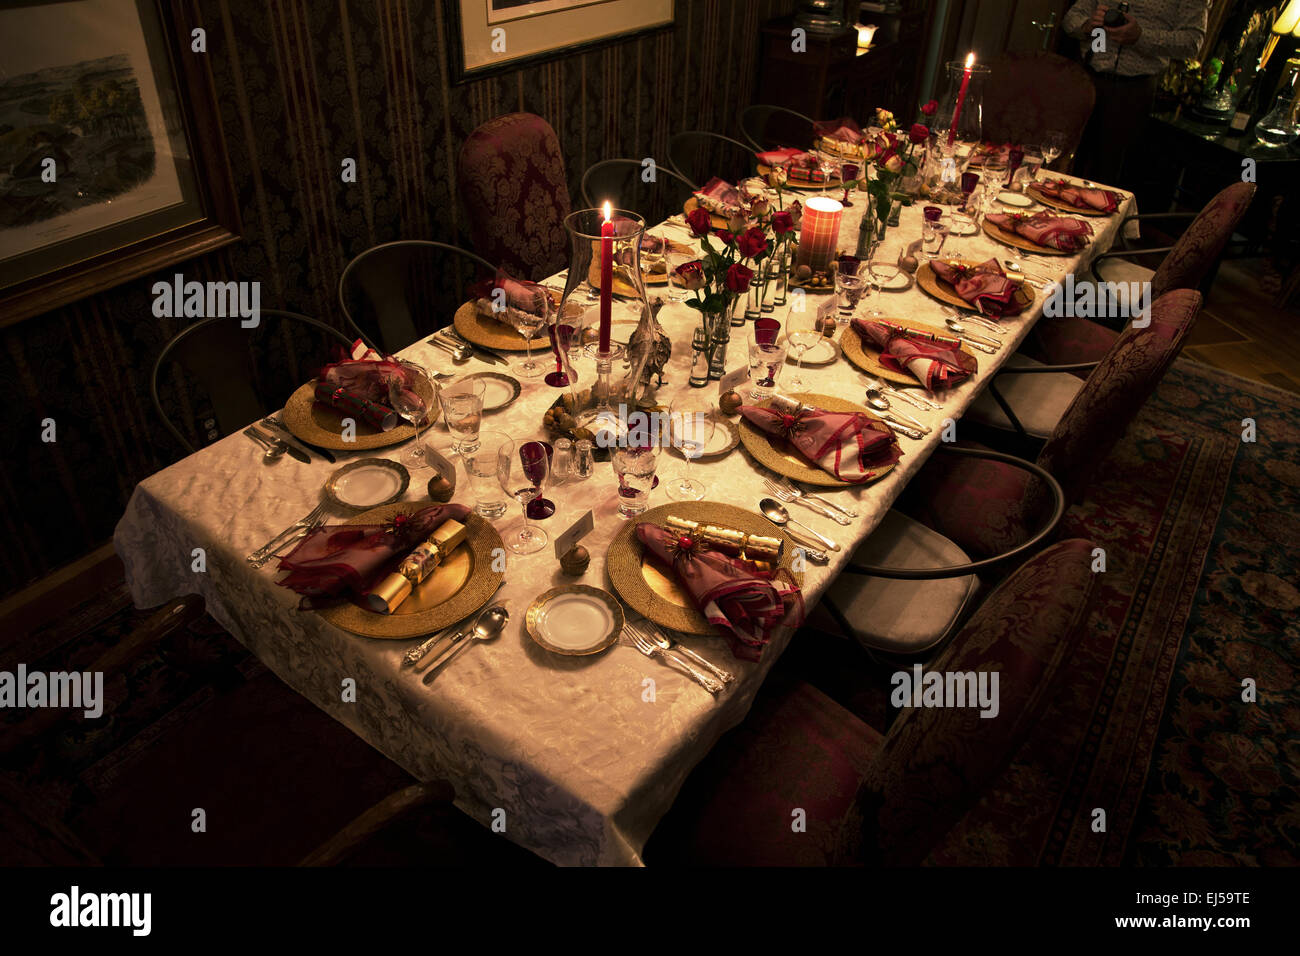 Christmas Dinner table setting Ojai California USA & Christmas Dinner table setting Ojai California USA Stock Photo ...